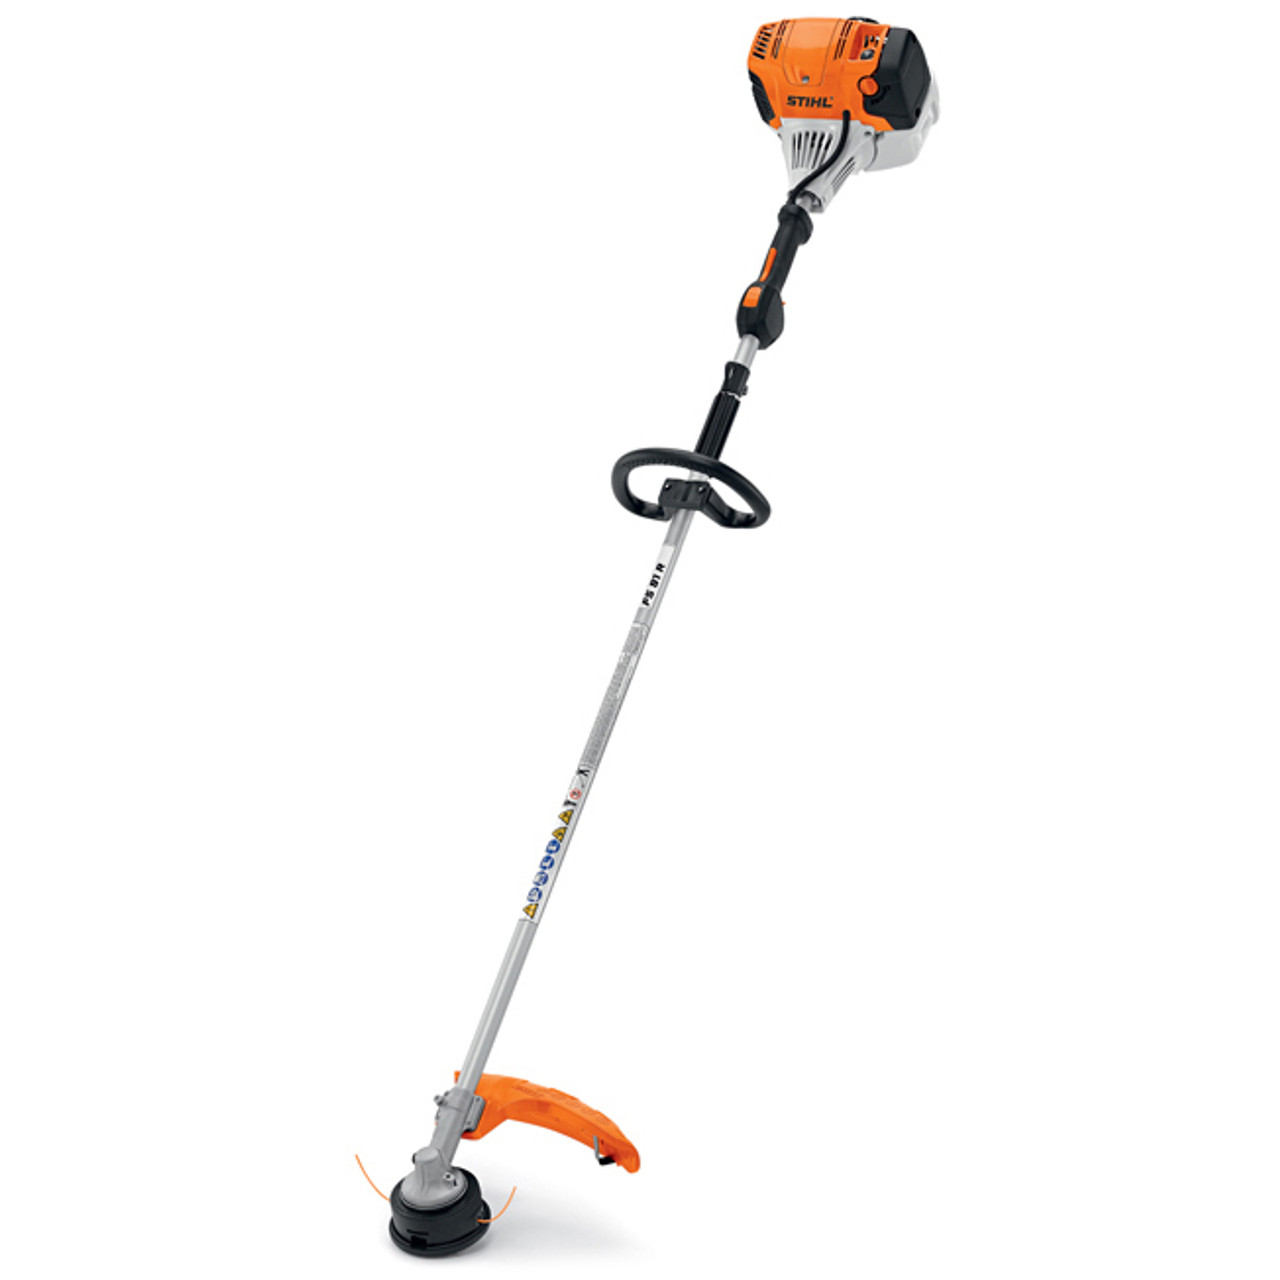 STIHL FS 91 R 28.4cc Commercial Straight Shaft String Trimmer Image